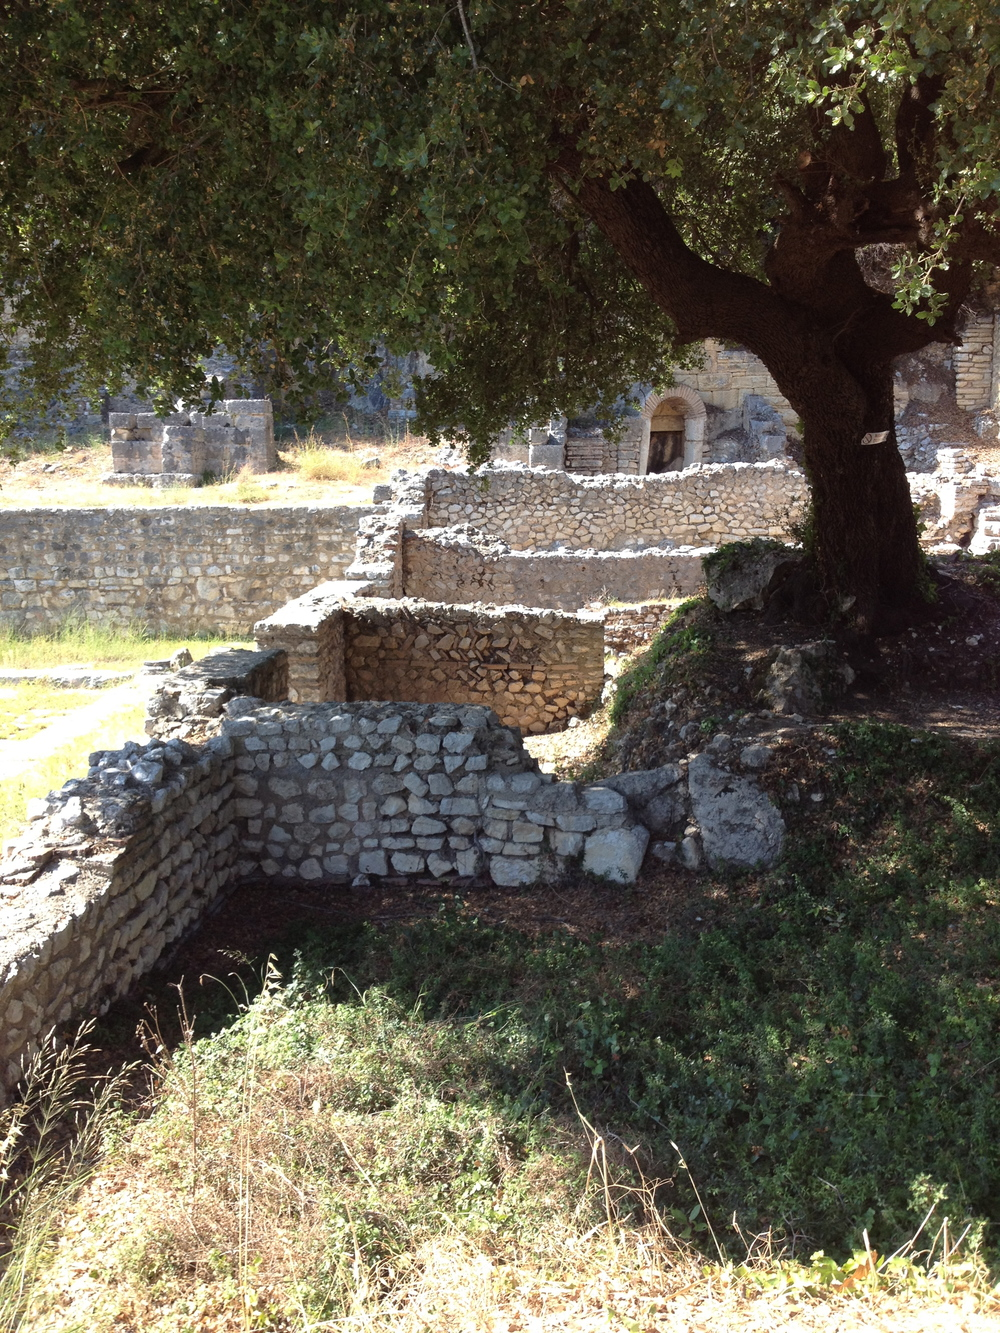 Walls from the ancient forum